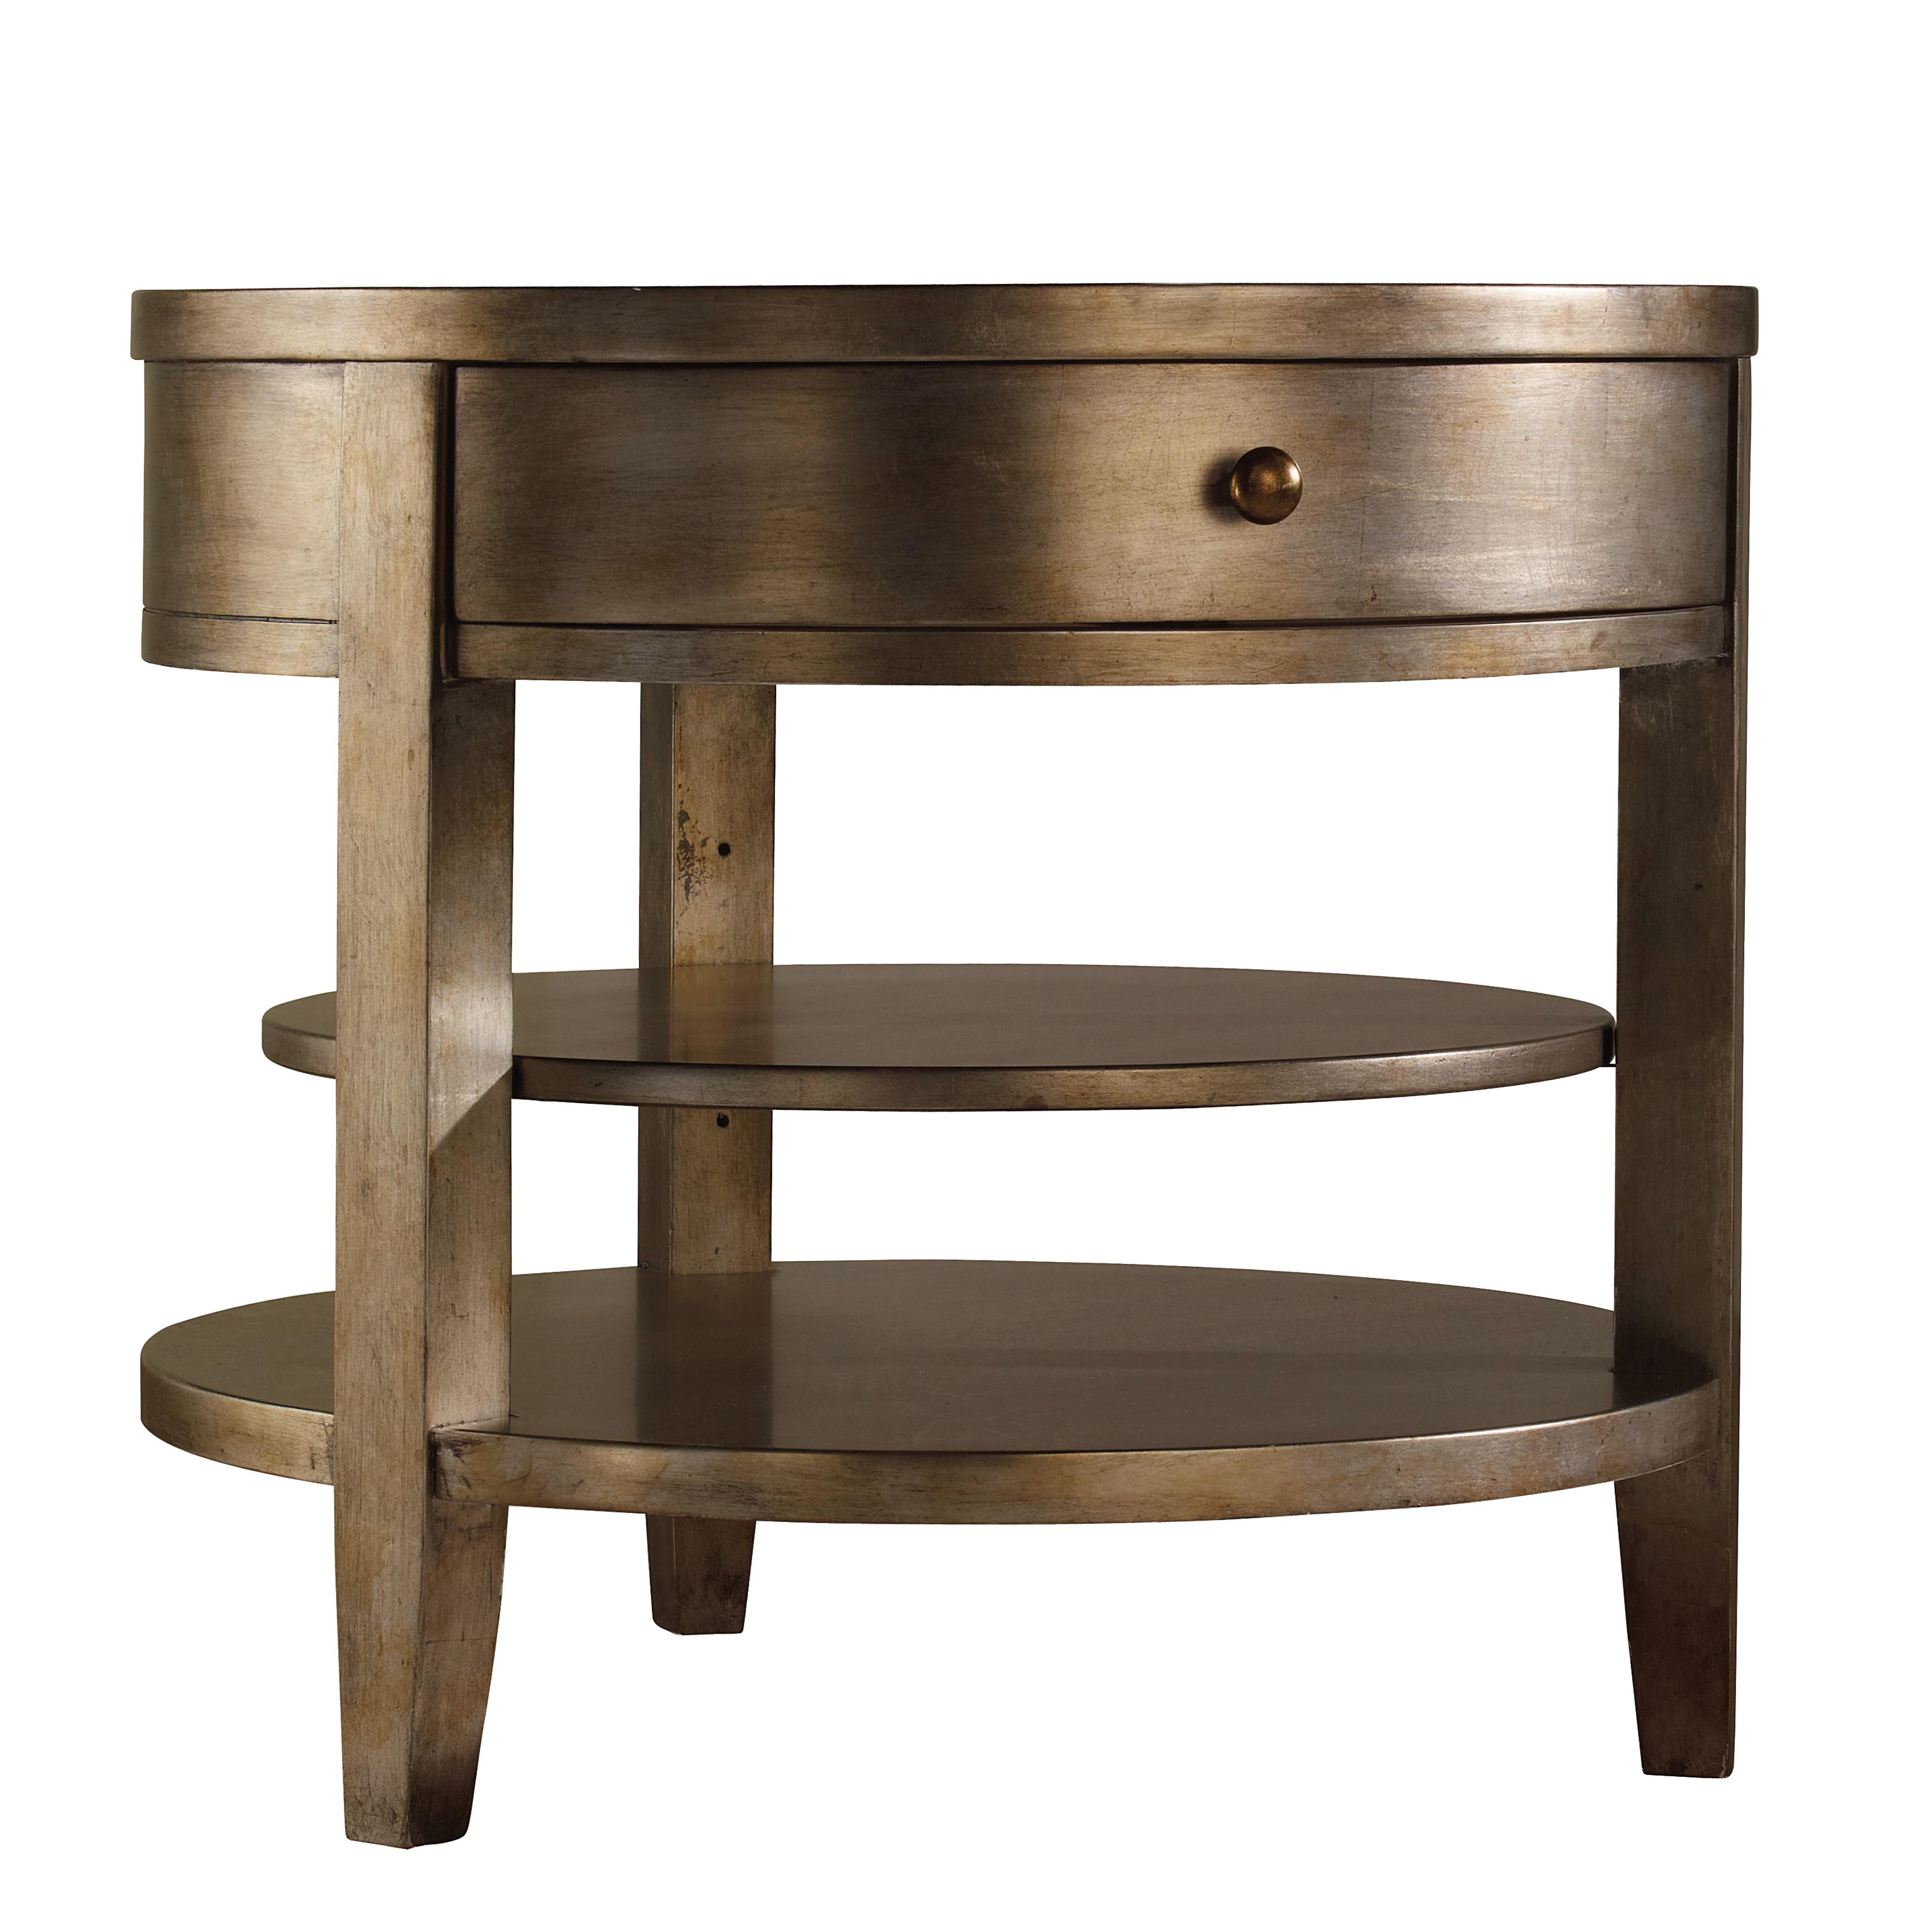 Hooker Furniture Sanctuary One-Drawer Round Lamp Table - Item Number: 3014-50003